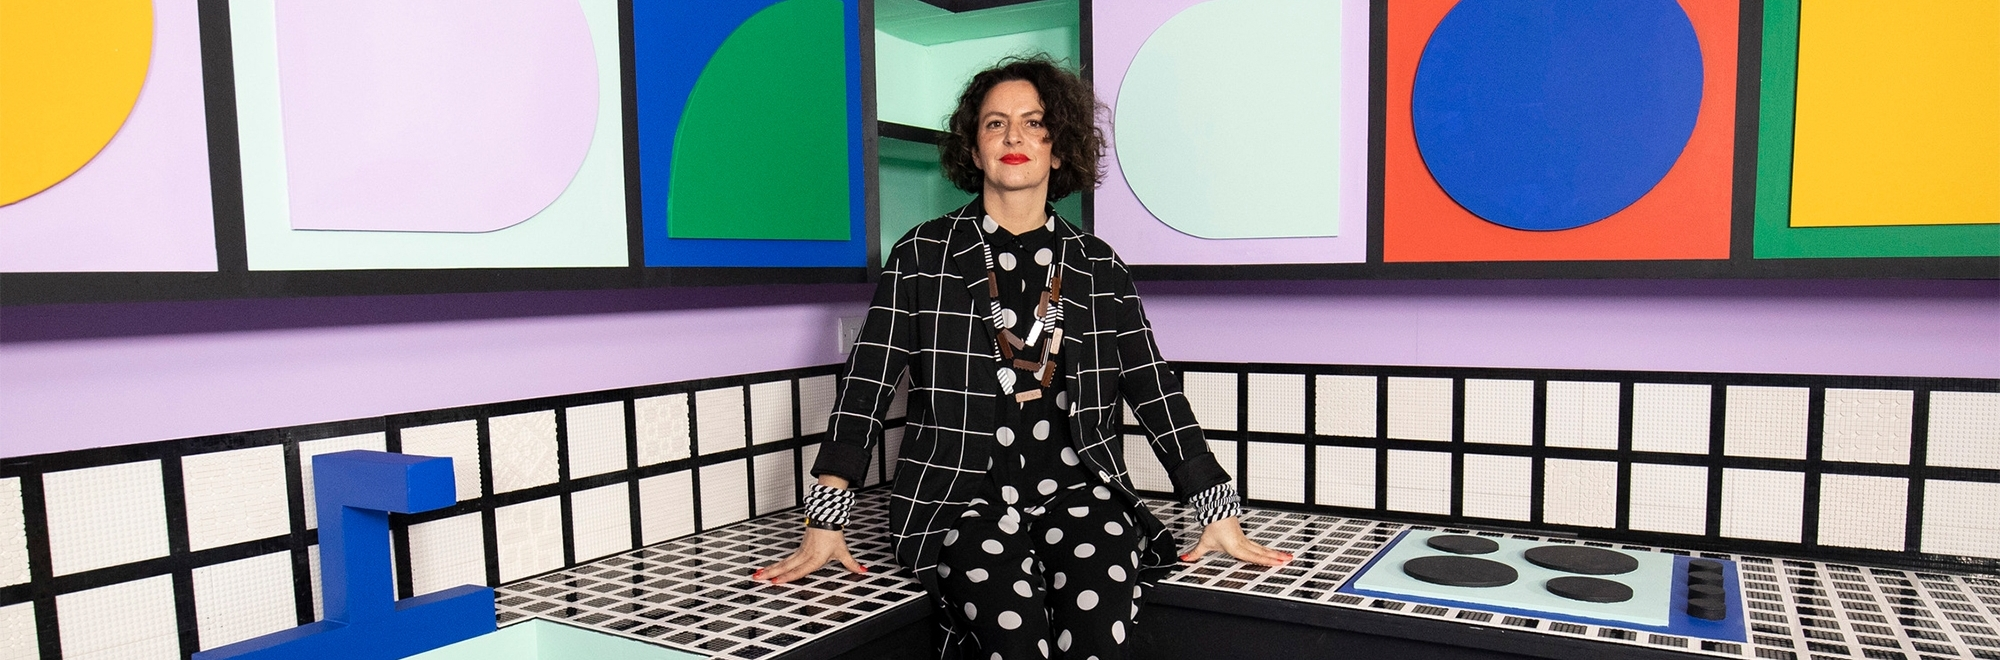 Lego and French designer Camille Walala build a life-size House of Dots